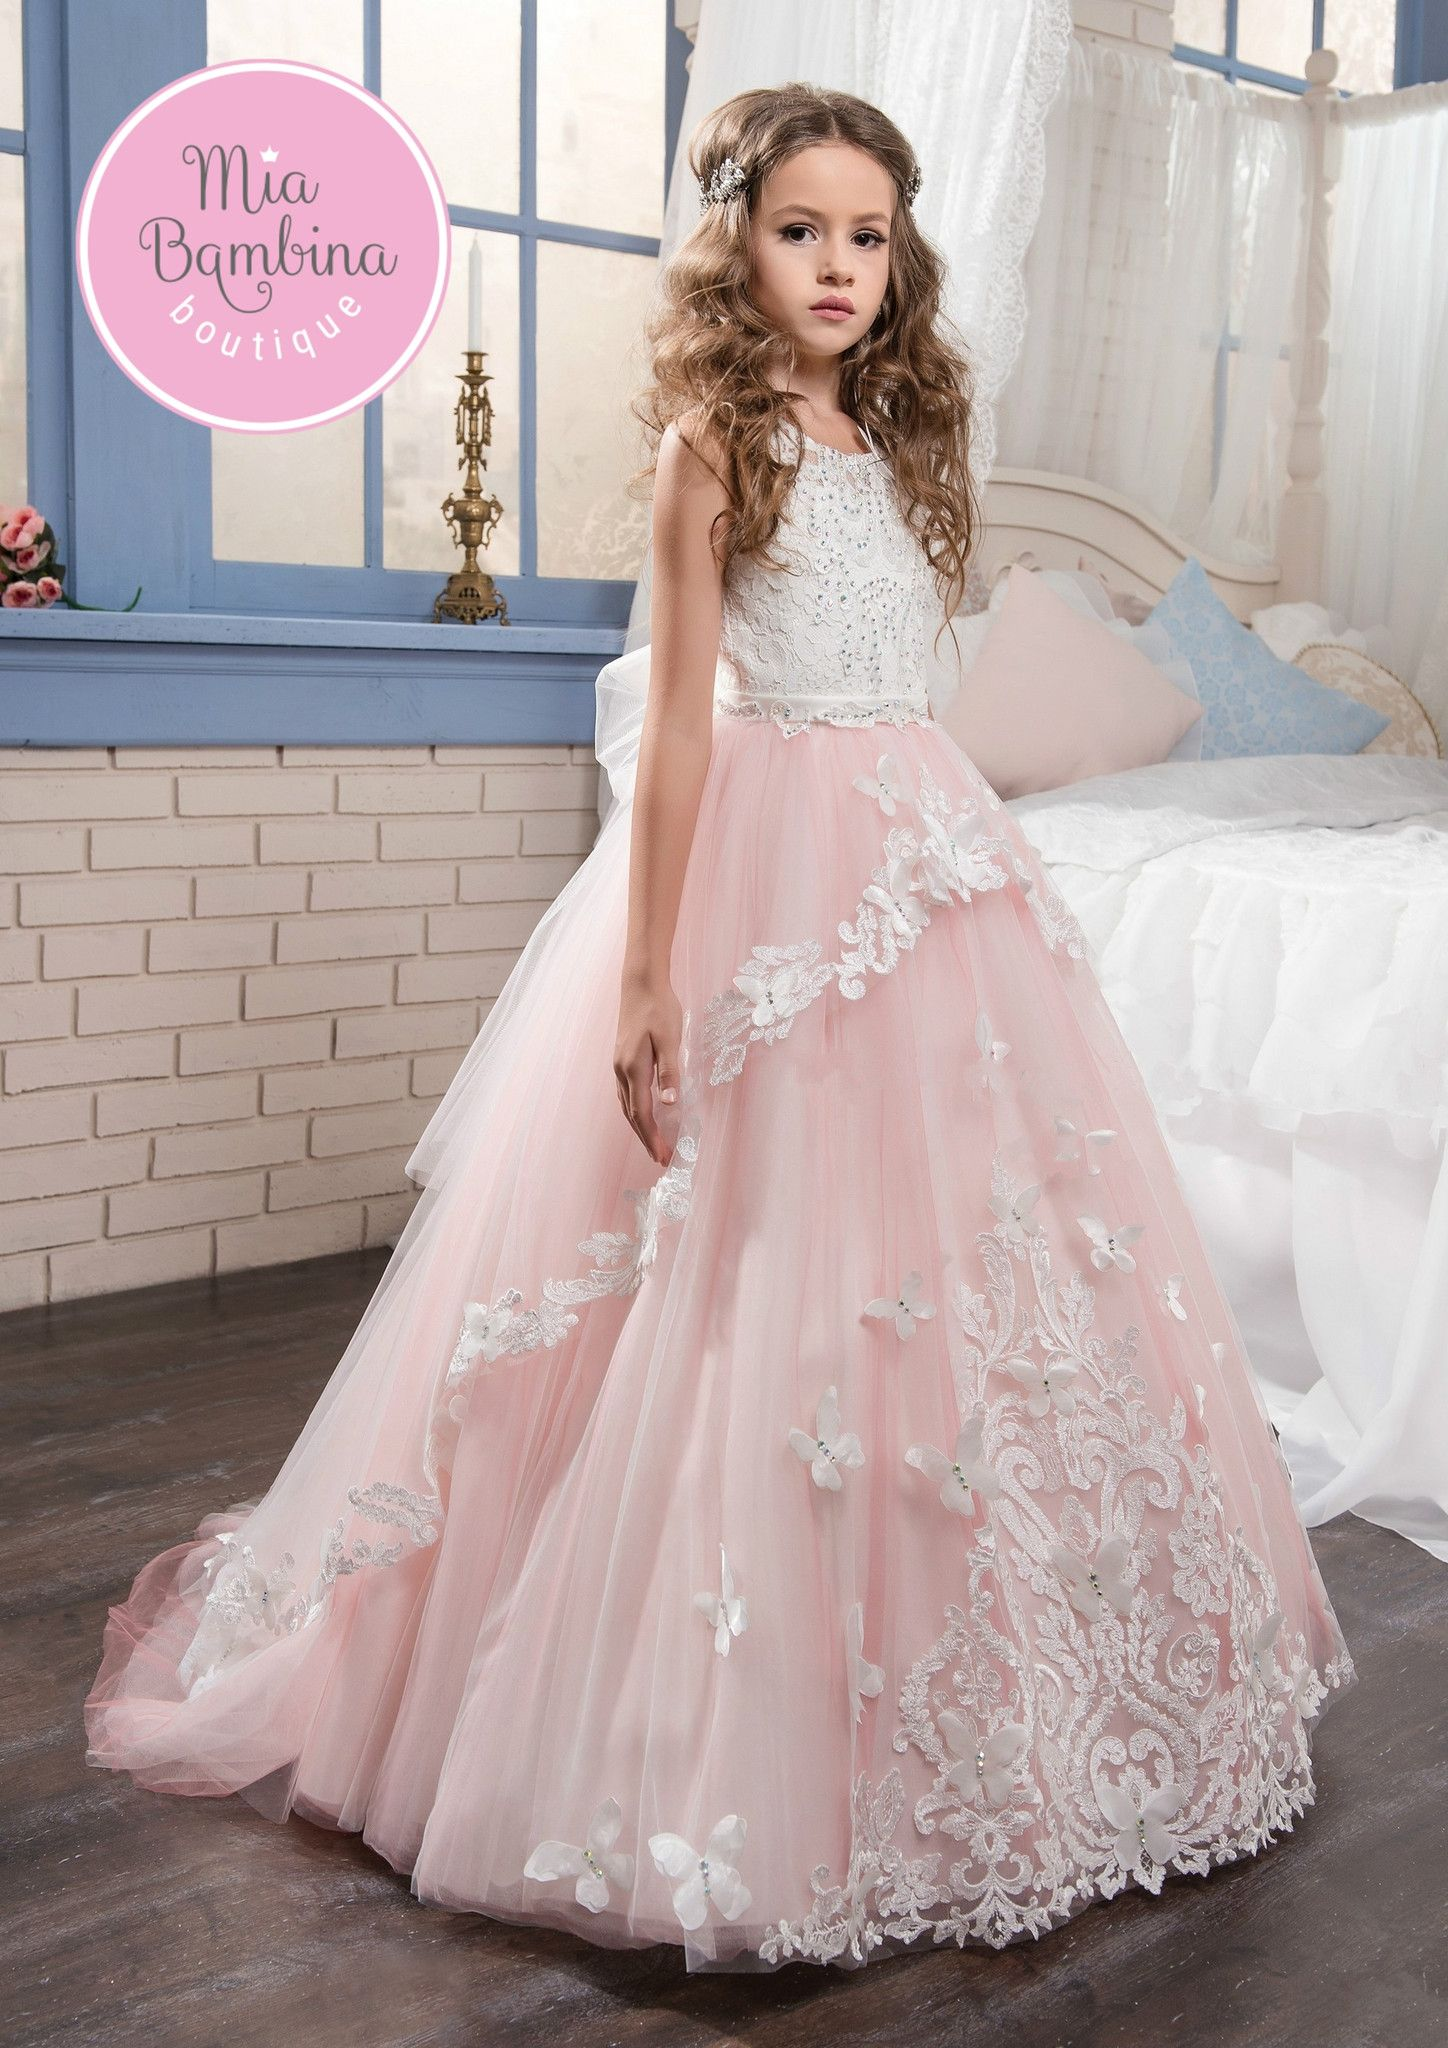 cfe736550 Let your girl live her fairytale fantasy with this magical Ontario flower  girl dress. Exquisite